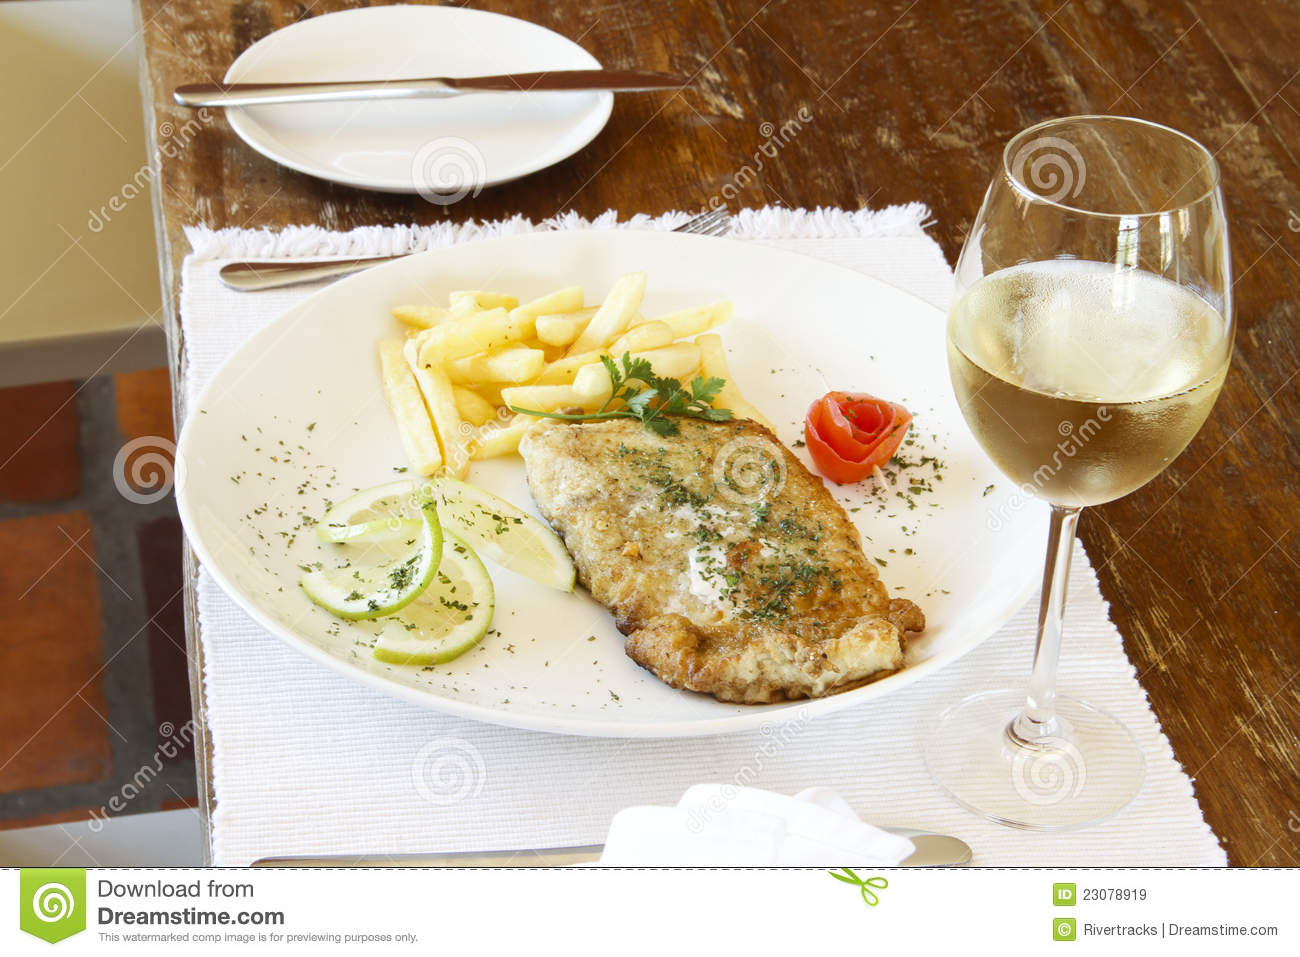 b070340eb68 Glass Of White Wine With Fish And Chips Stock Image - Image of knife ...